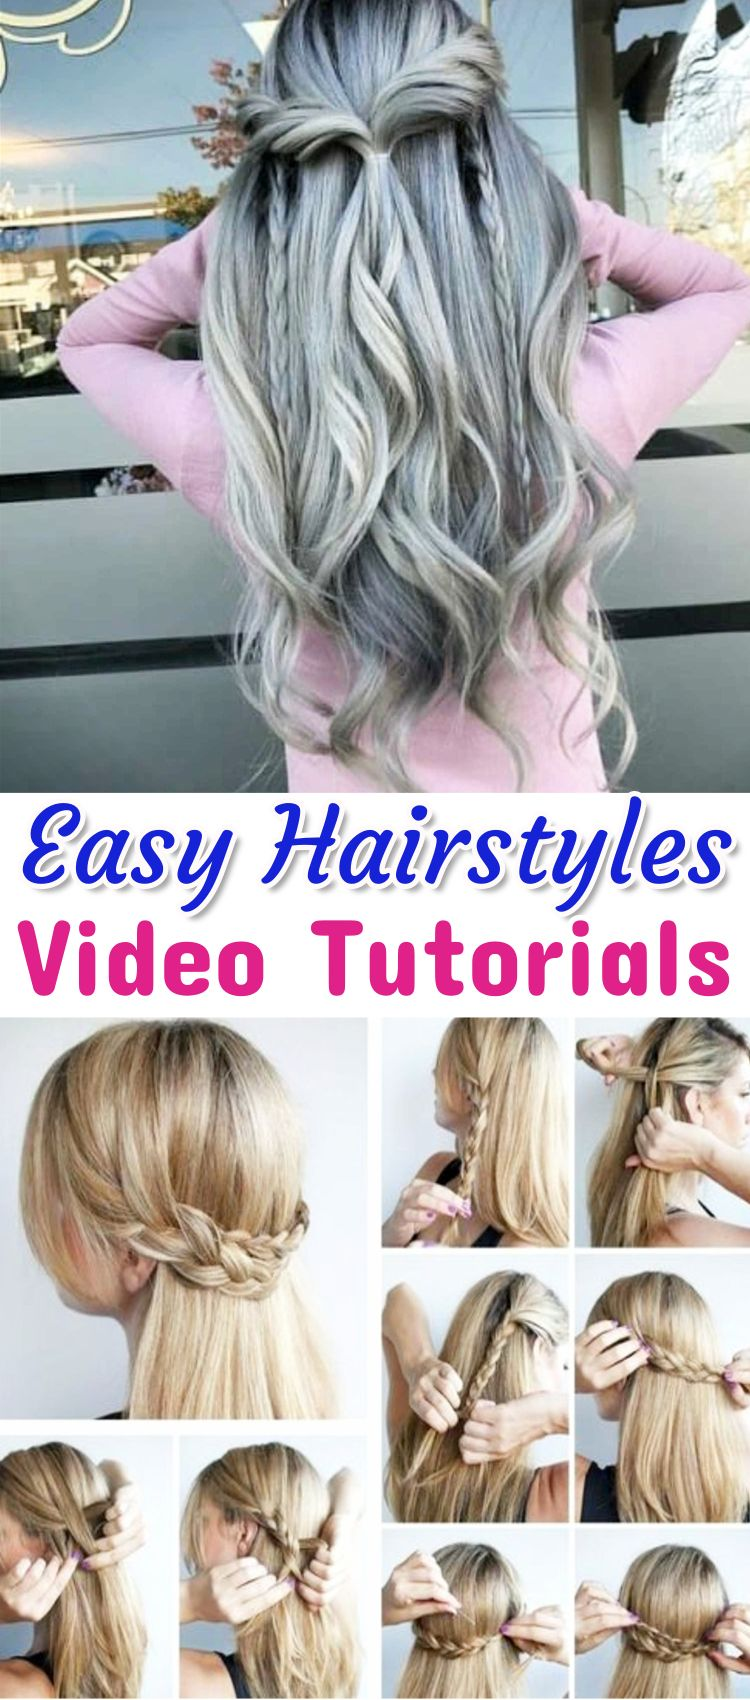 10 Easy Lazy Girl Hairstyle Ideas Step By Step Video Tutorials For Lazy Day Running Late Quick Hairstyles Clever Diy Ideas Lazy Girl Hairstyles Hair Styles Easy Everyday Hairstyles